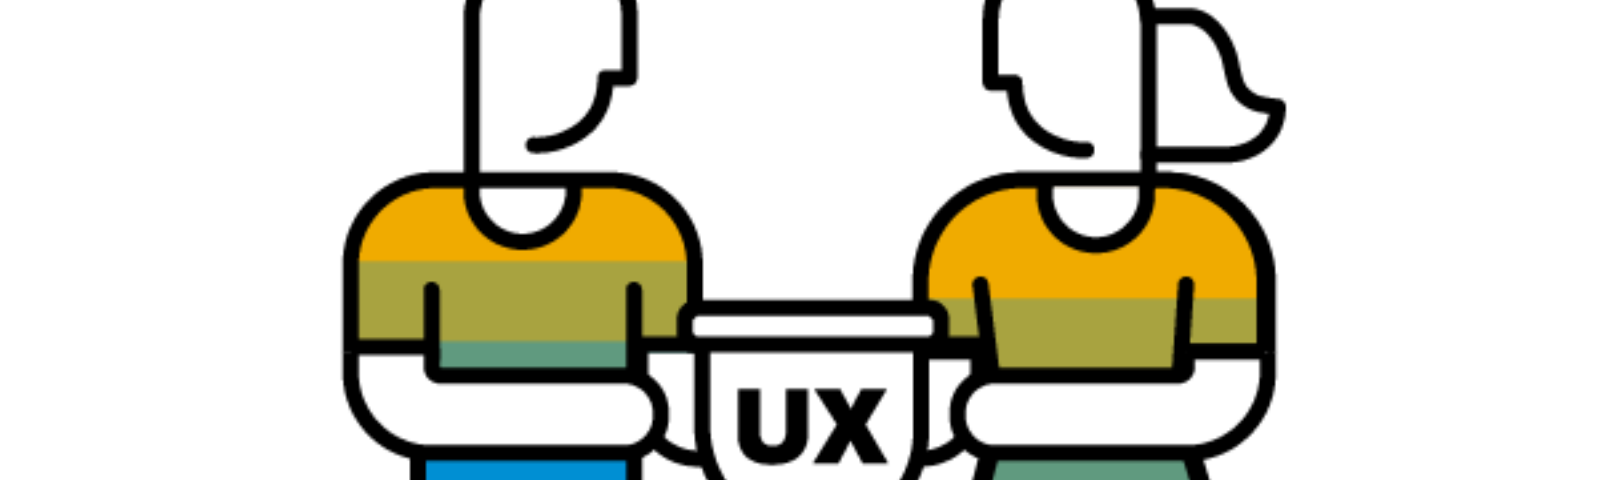 UX champions logo: man and woman holding a UX trophy